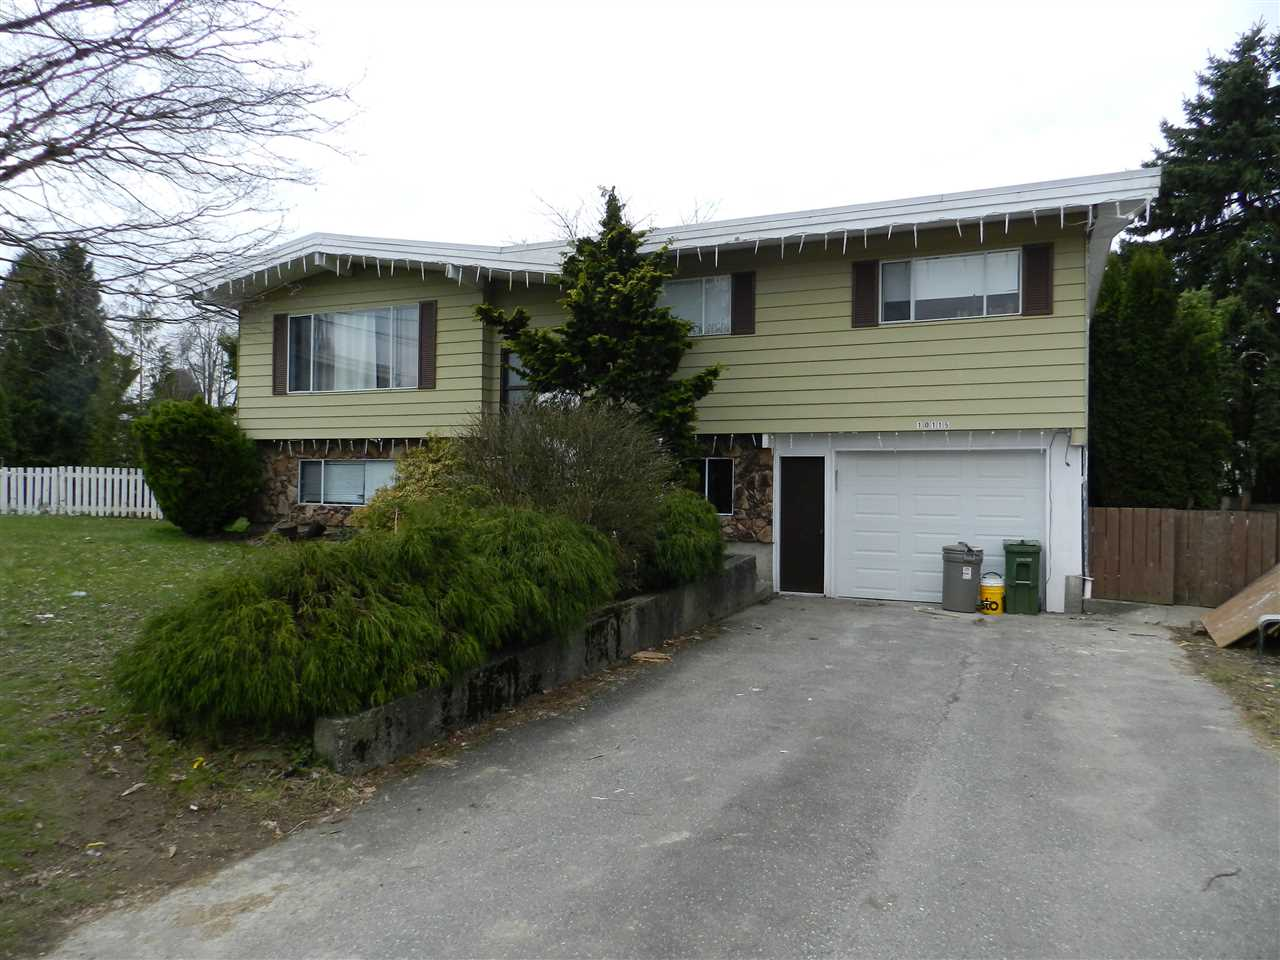 Fairfield Island Chilliwack Homes For Sale